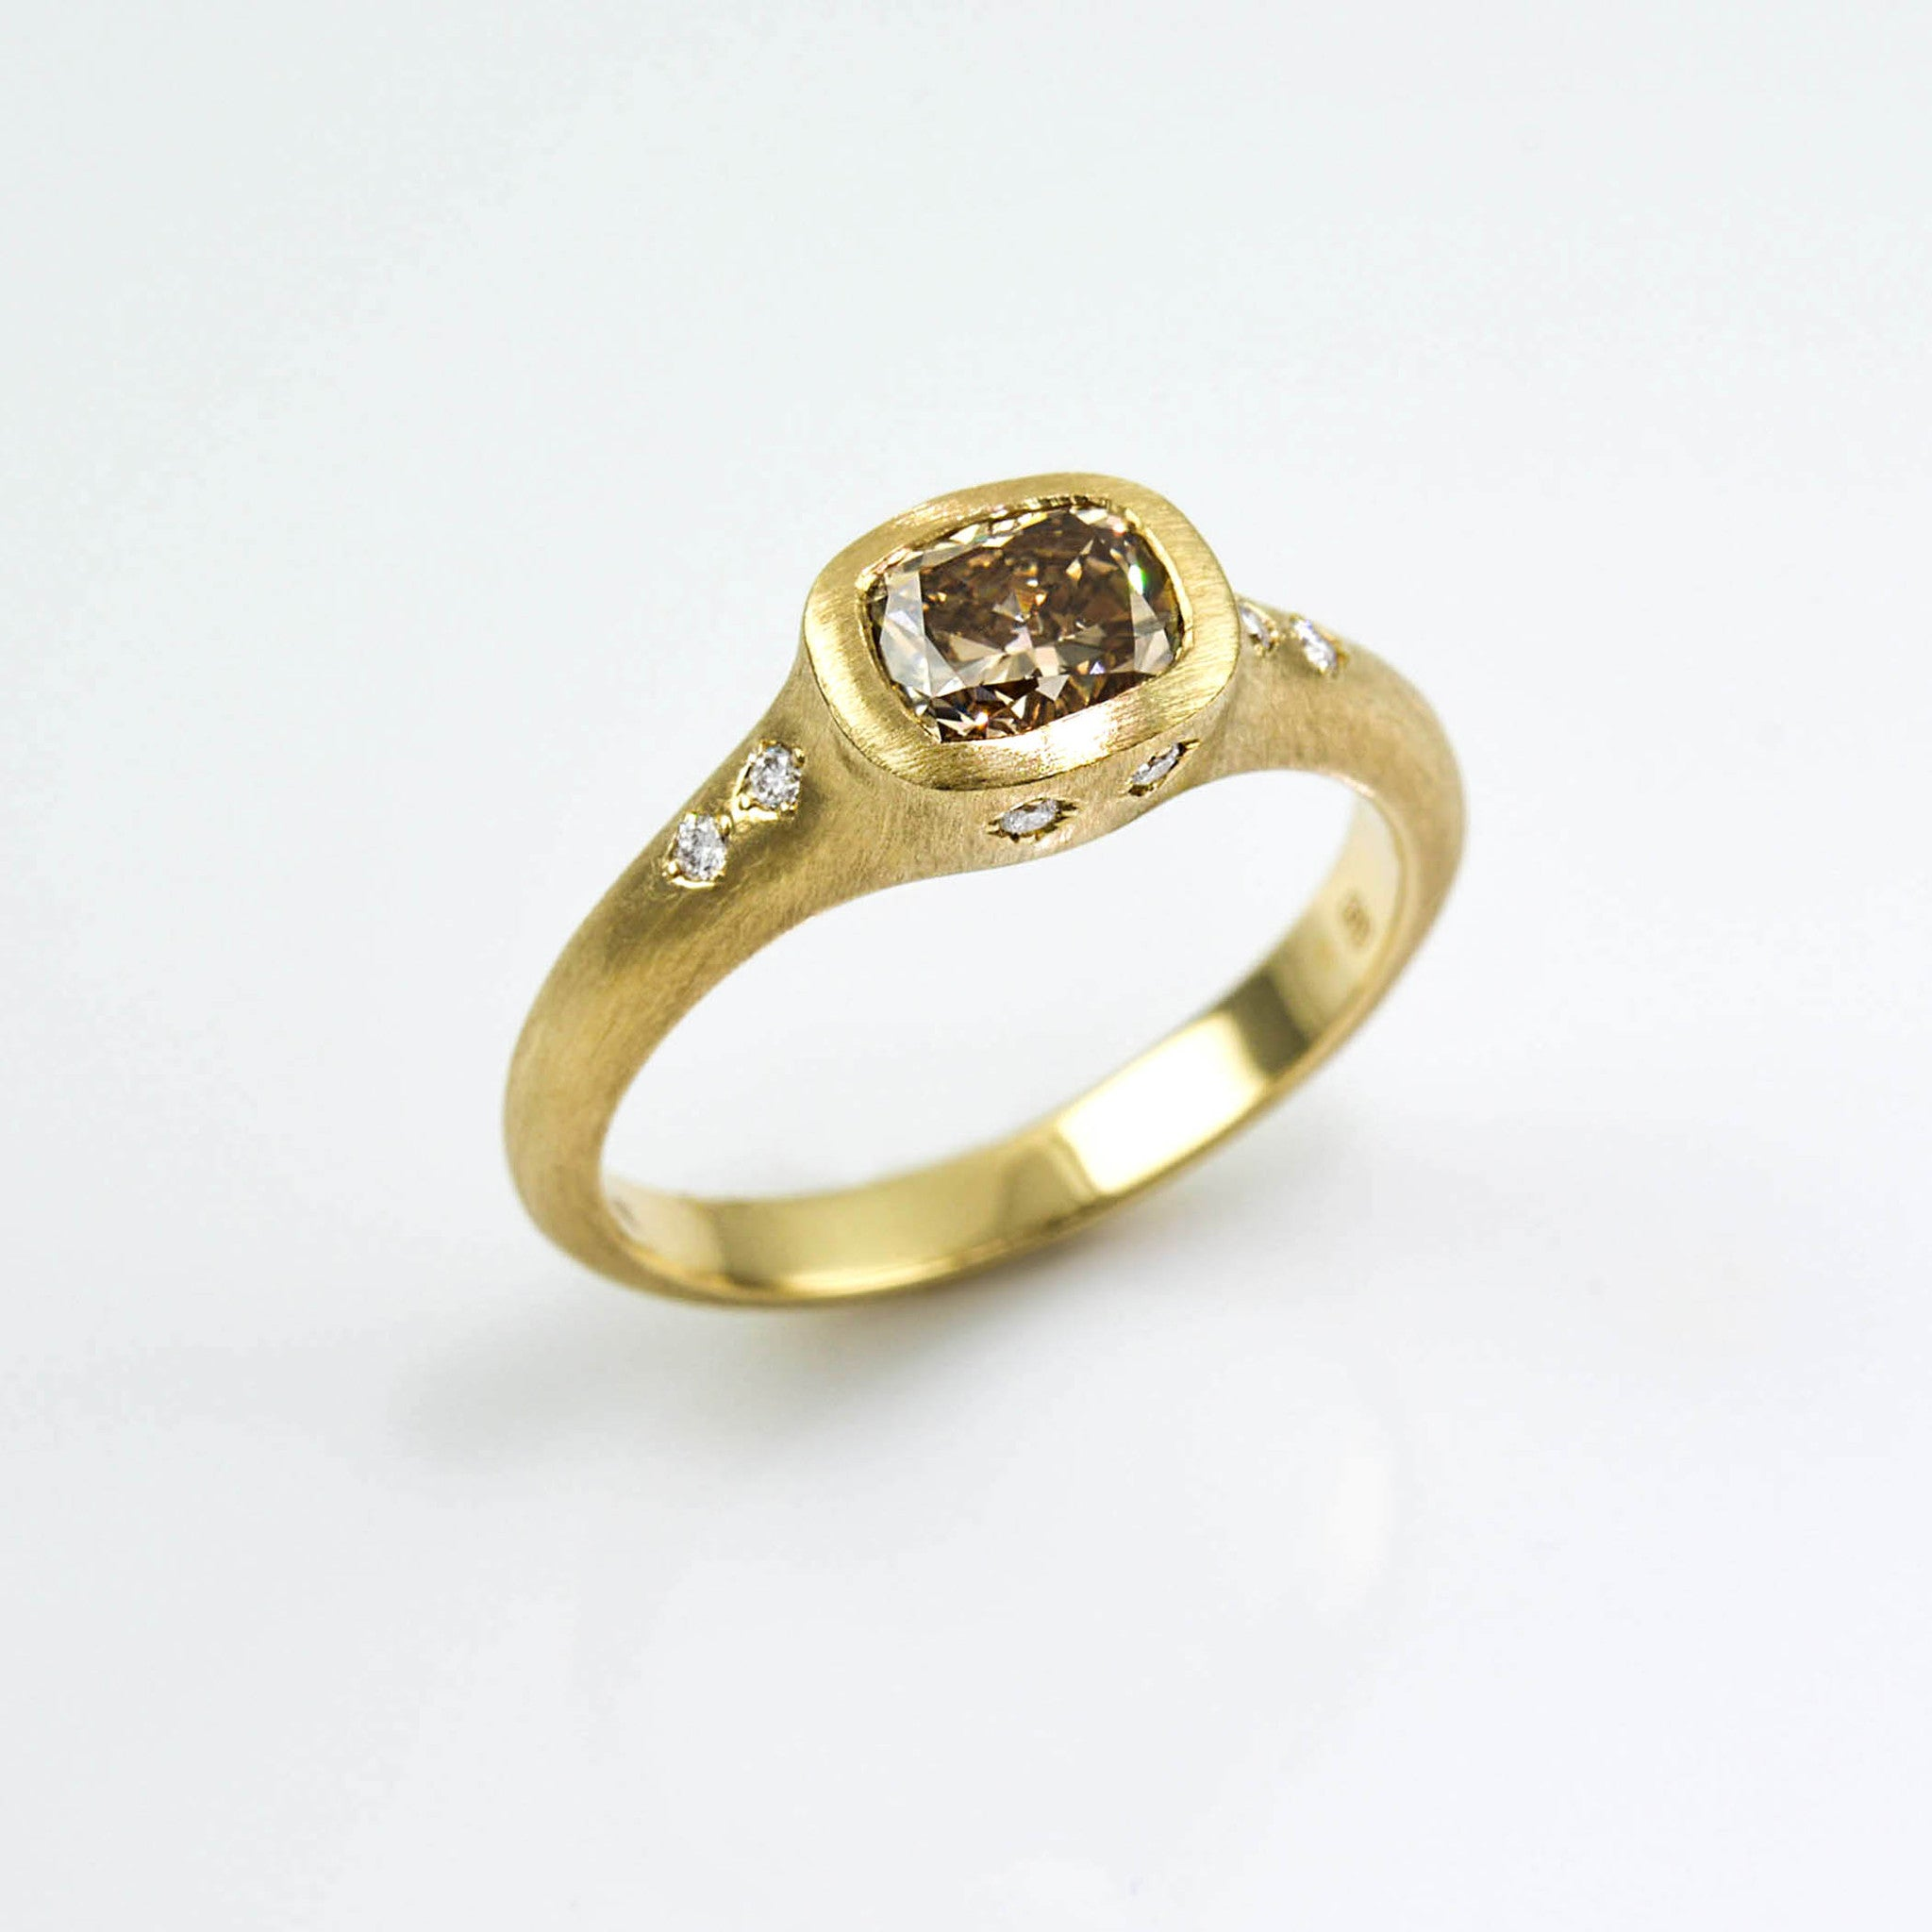 johnny engagement diamond brushed yellow ring jrj shop jewellery cut gold emerald rocket rings